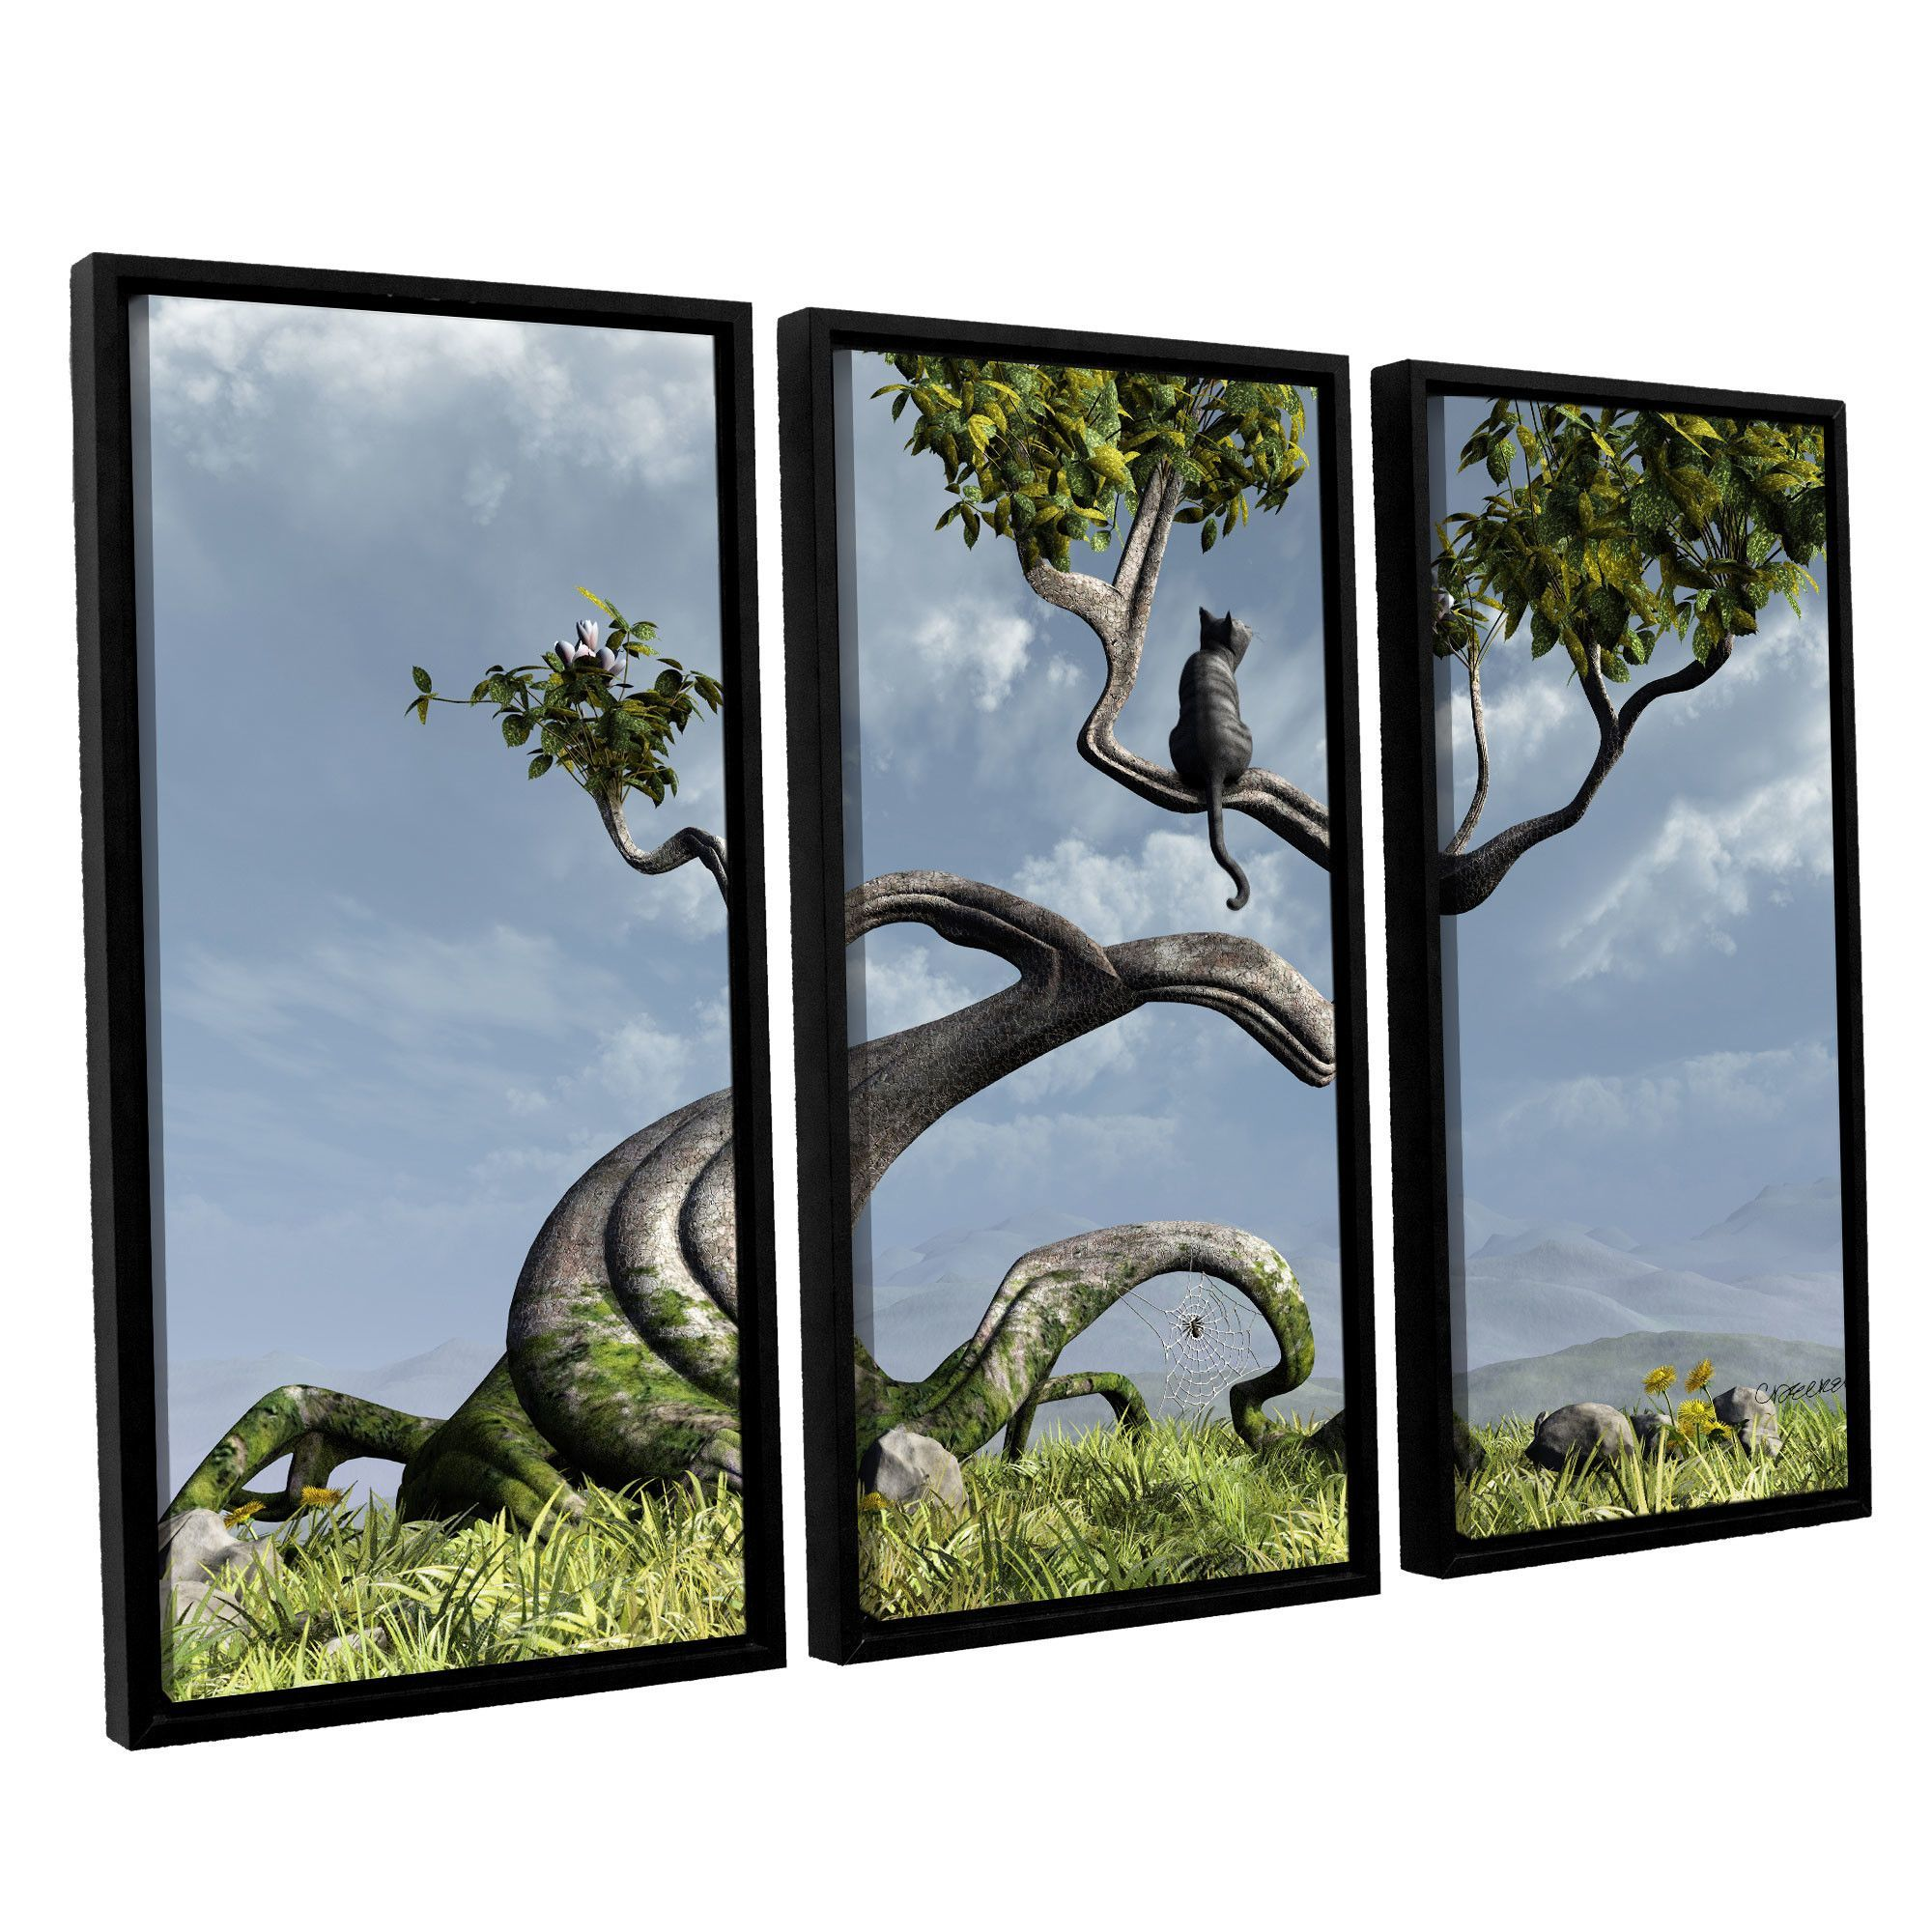 Sitting Tree by Cynthia Decker 3 Piece Floater Framed Canvas Set